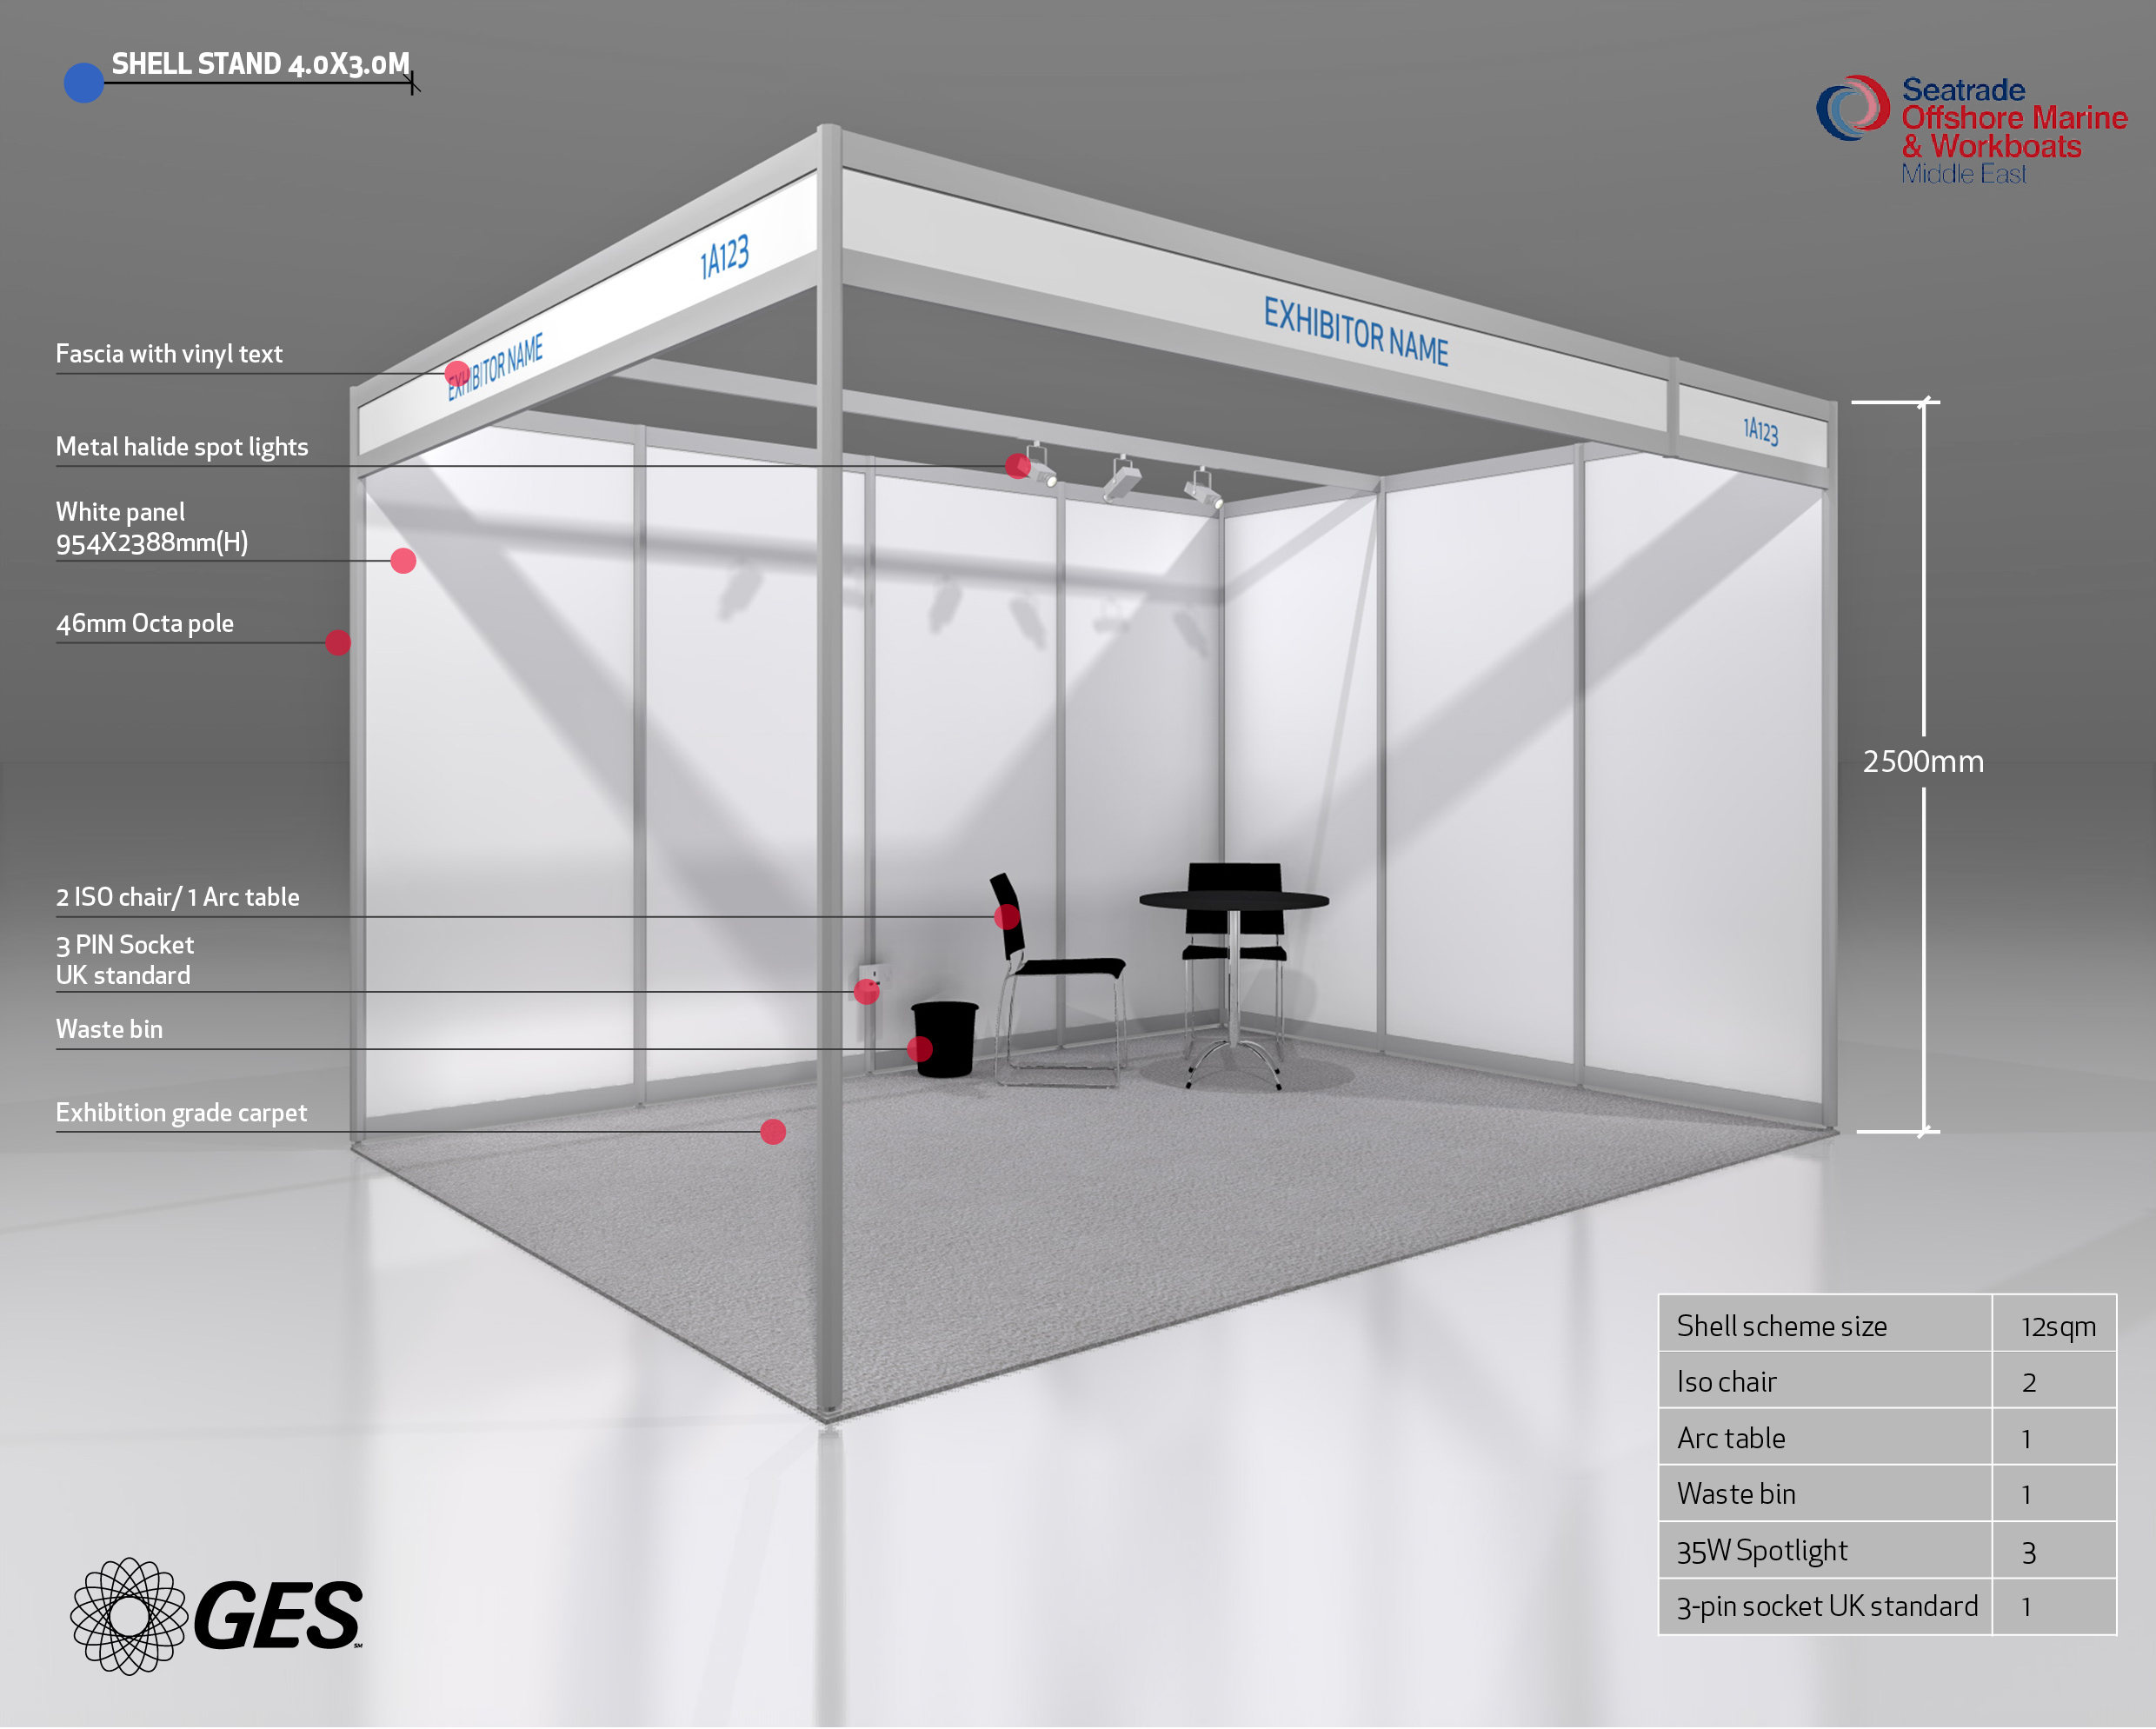 Exhibition Booth Standard Shell Scheme : Expresso by ges